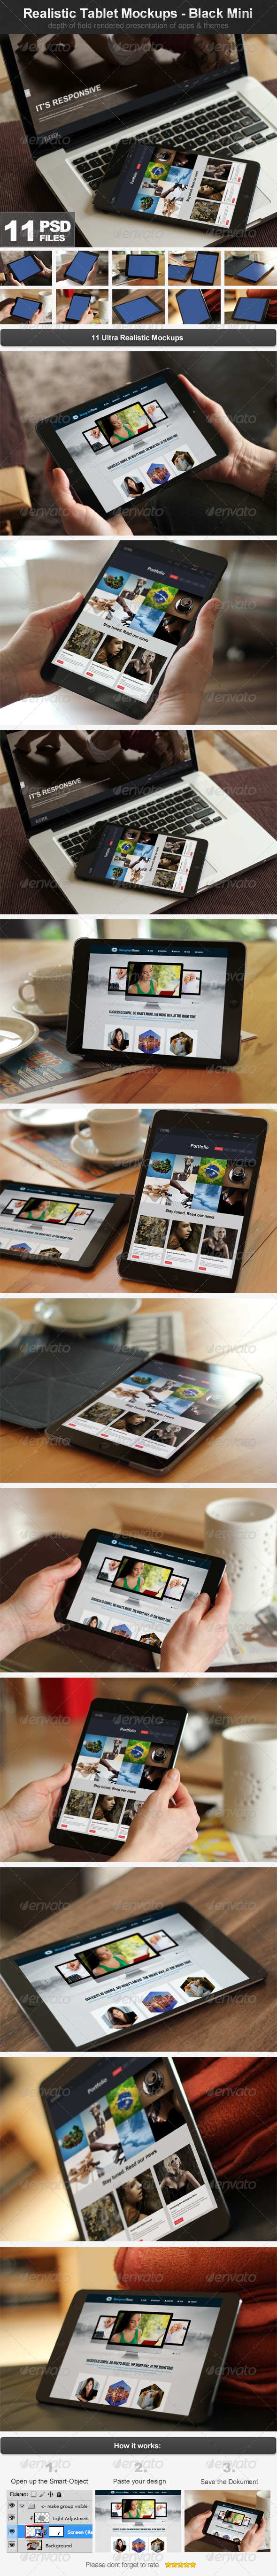 Realistic Tablet Mockups Black Mini